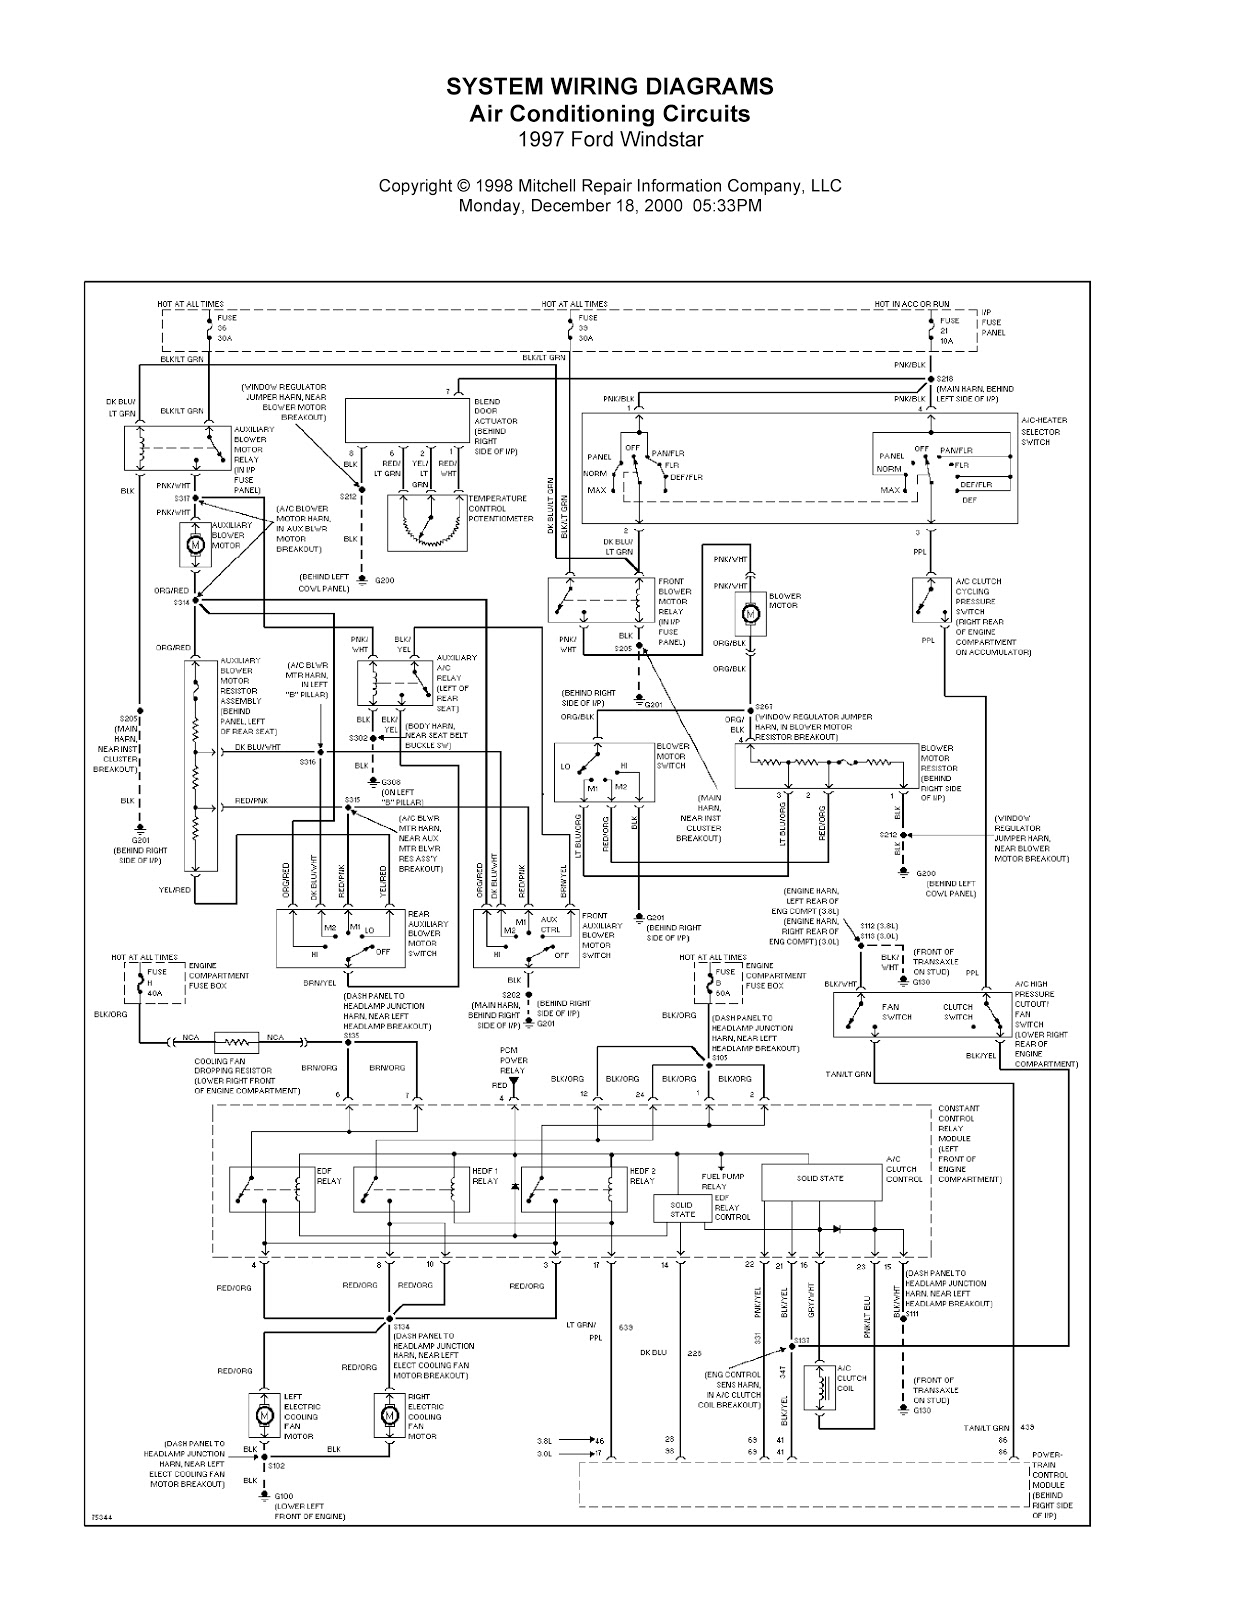 0001 1997 ford windstar complete system wiring diagrams wiring 2003 ford windstar radio wiring diagram at soozxer.org